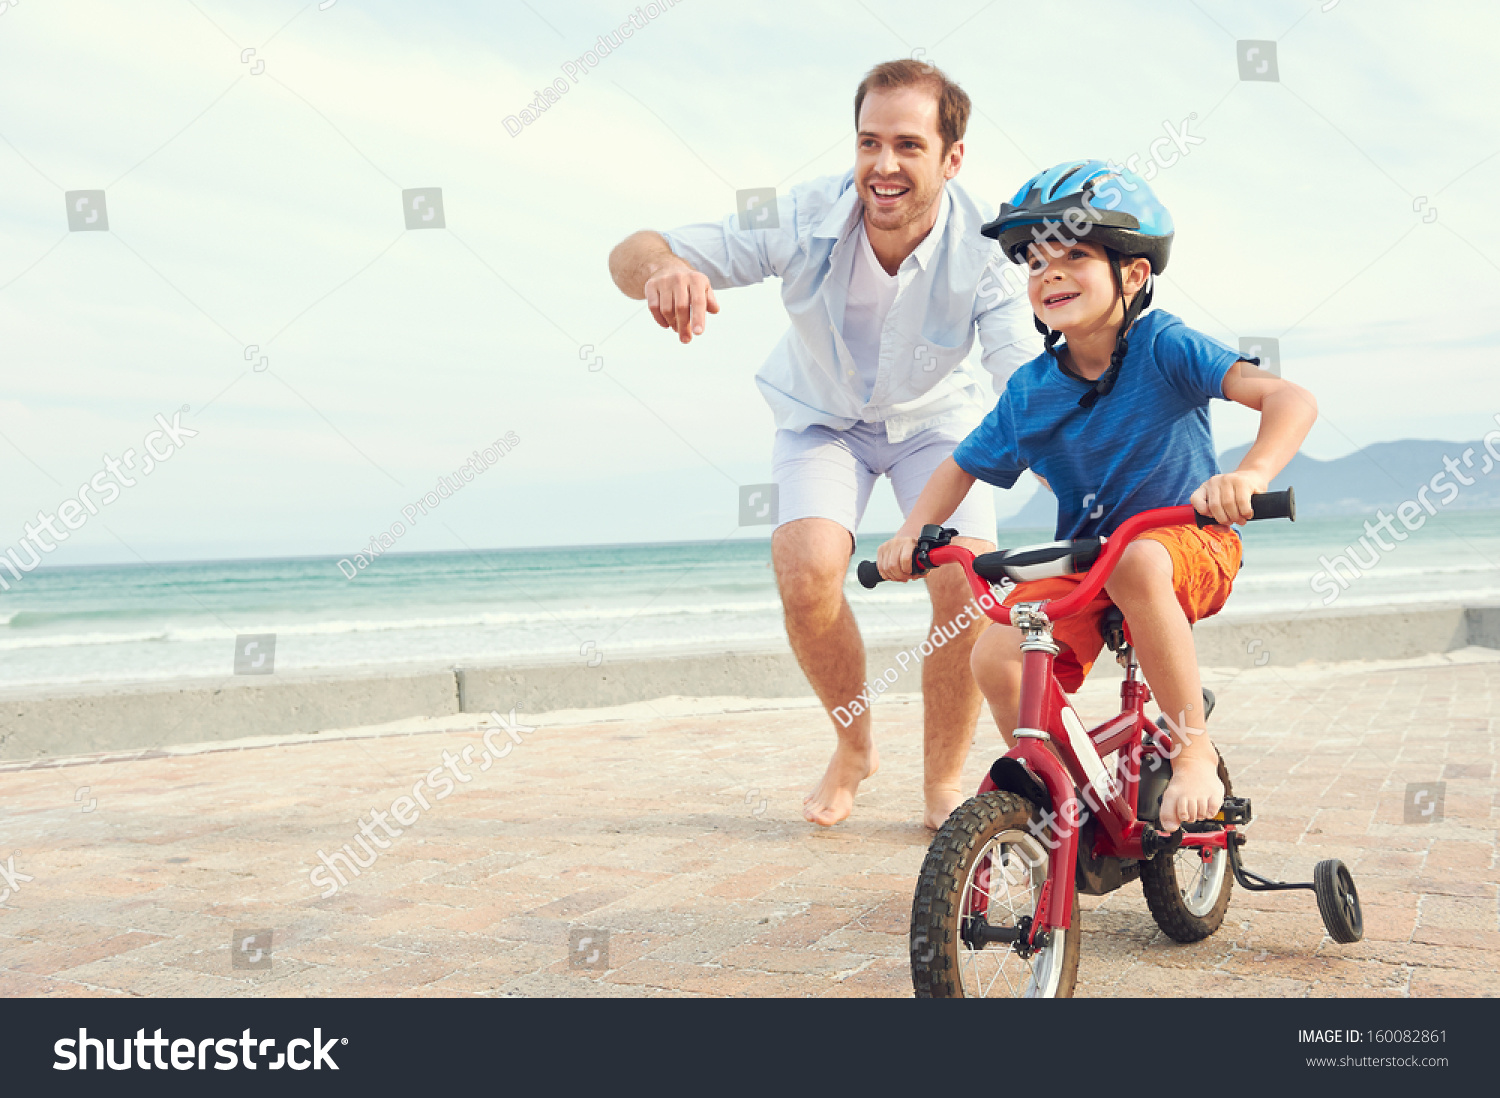 learning to ride a bicycle Learning to ride a bicycle is one of life's milestones, a moment of great satisfaction for children and parents alike | islabikes.